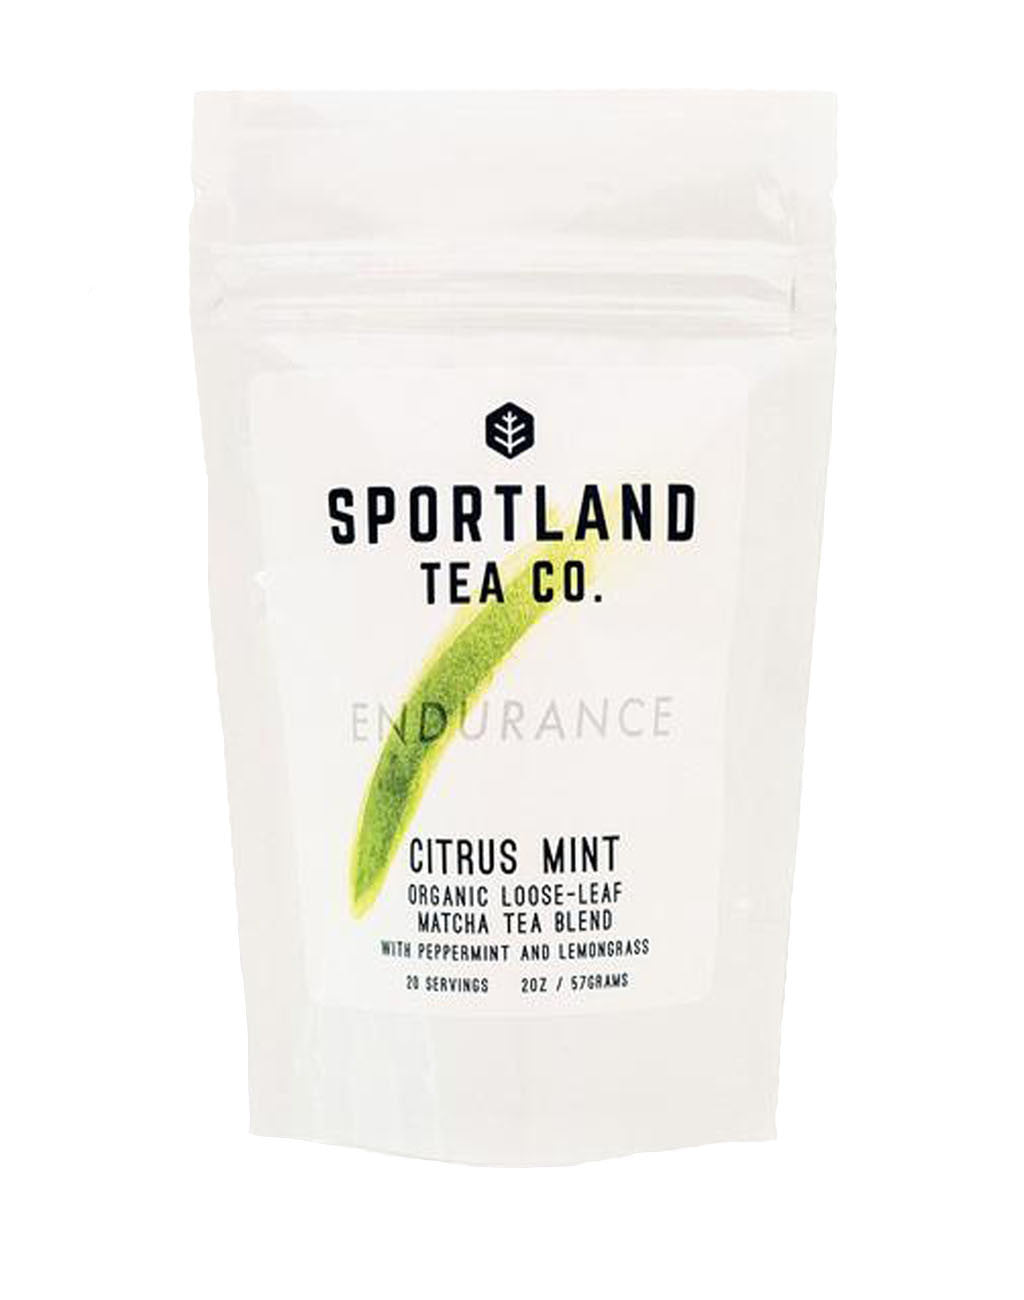 Sportland Tea Co. Endurance Blend (Citrus Mint)Citrus Mint_master_image